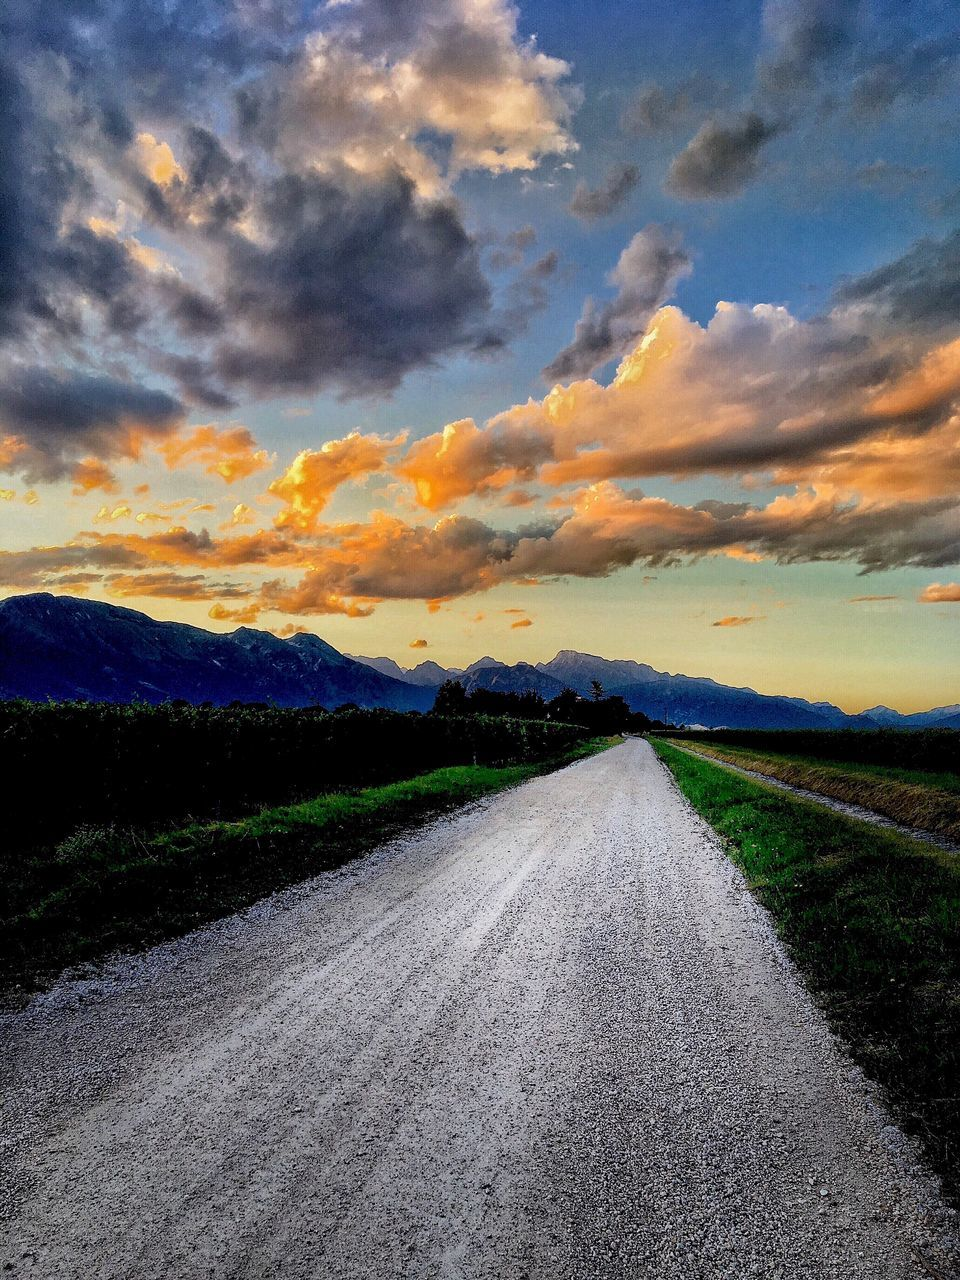 road, the way forward, scenics, sky, landscape, sunset, tranquil scene, nature, cloud - sky, tranquility, no people, outdoors, transportation, beauty in nature, rural scene, mountain, day